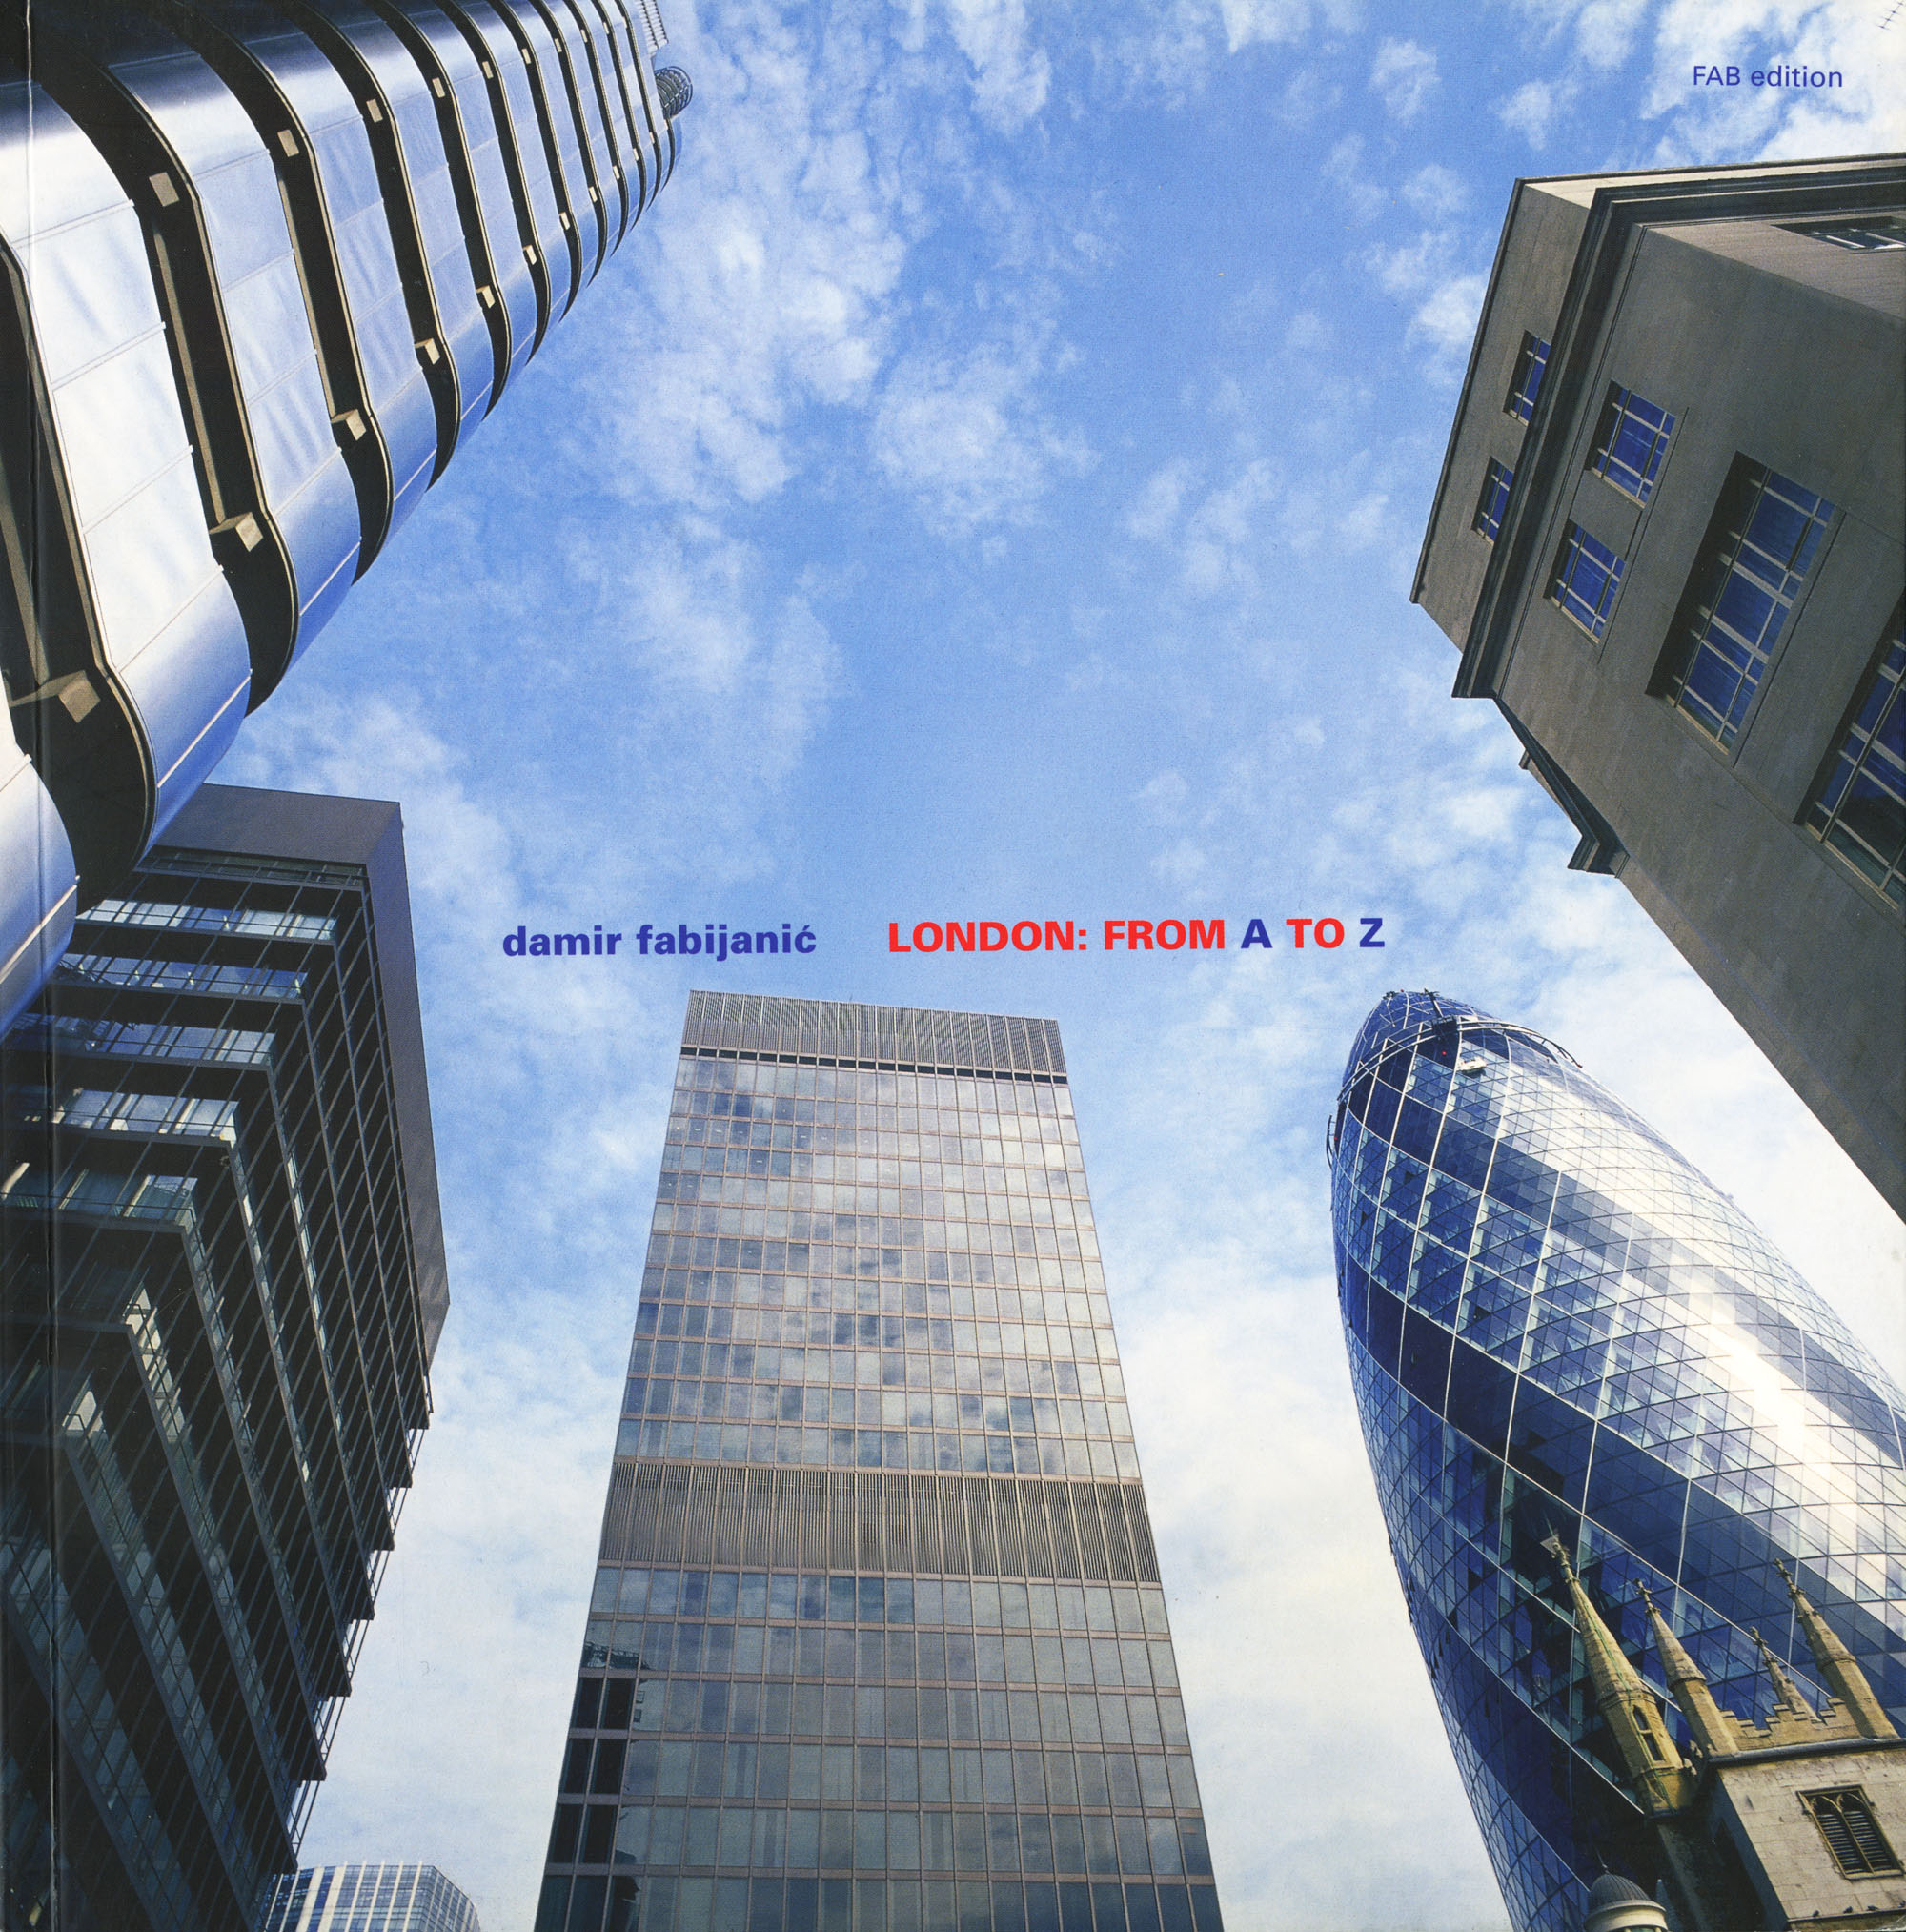 The exhibition and book: <em>London from A to Z</em>